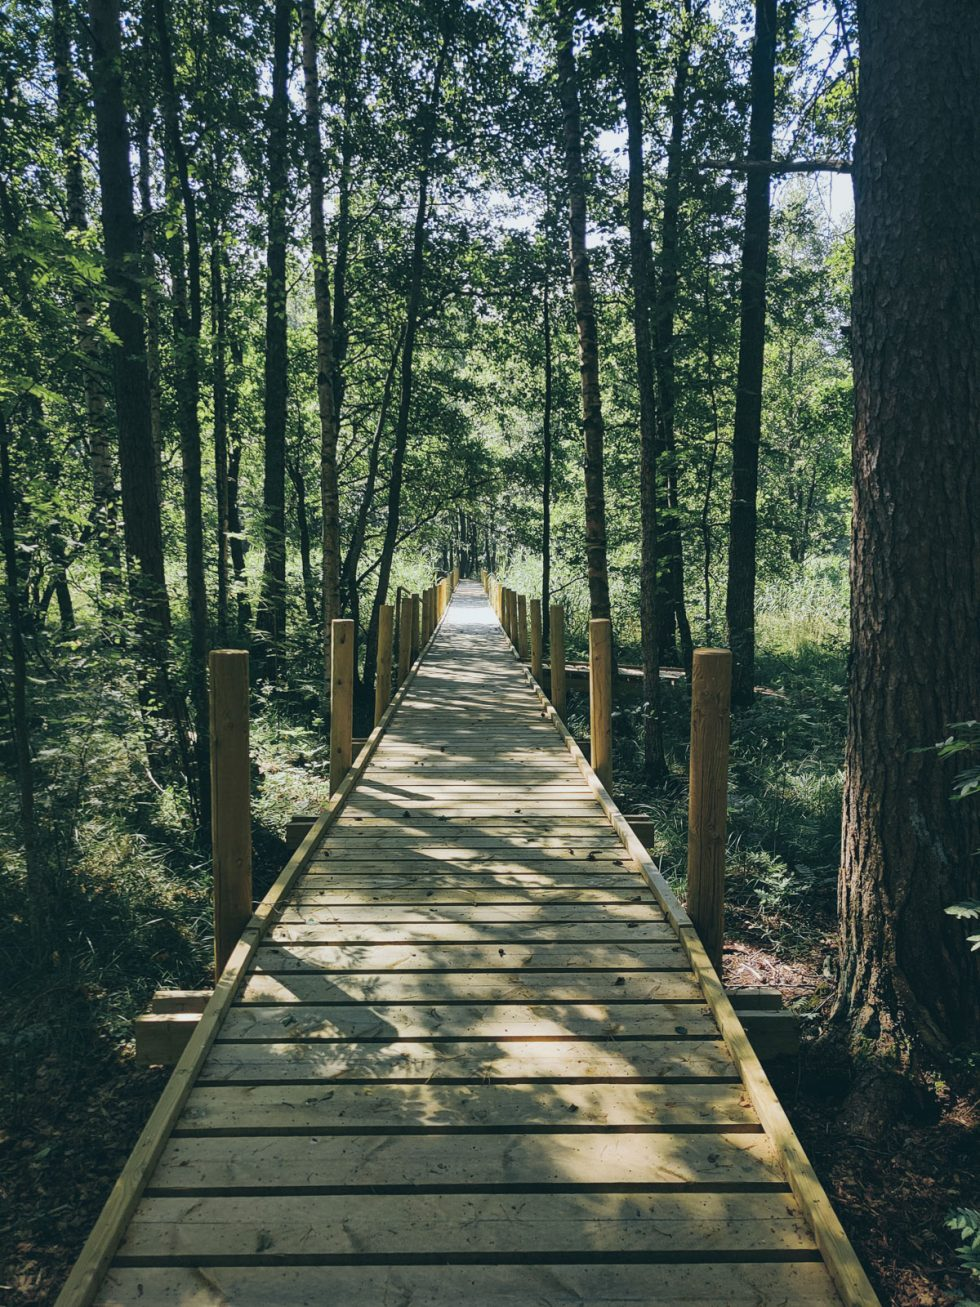 A wooden pathway in a forest. Opens in lightbox.